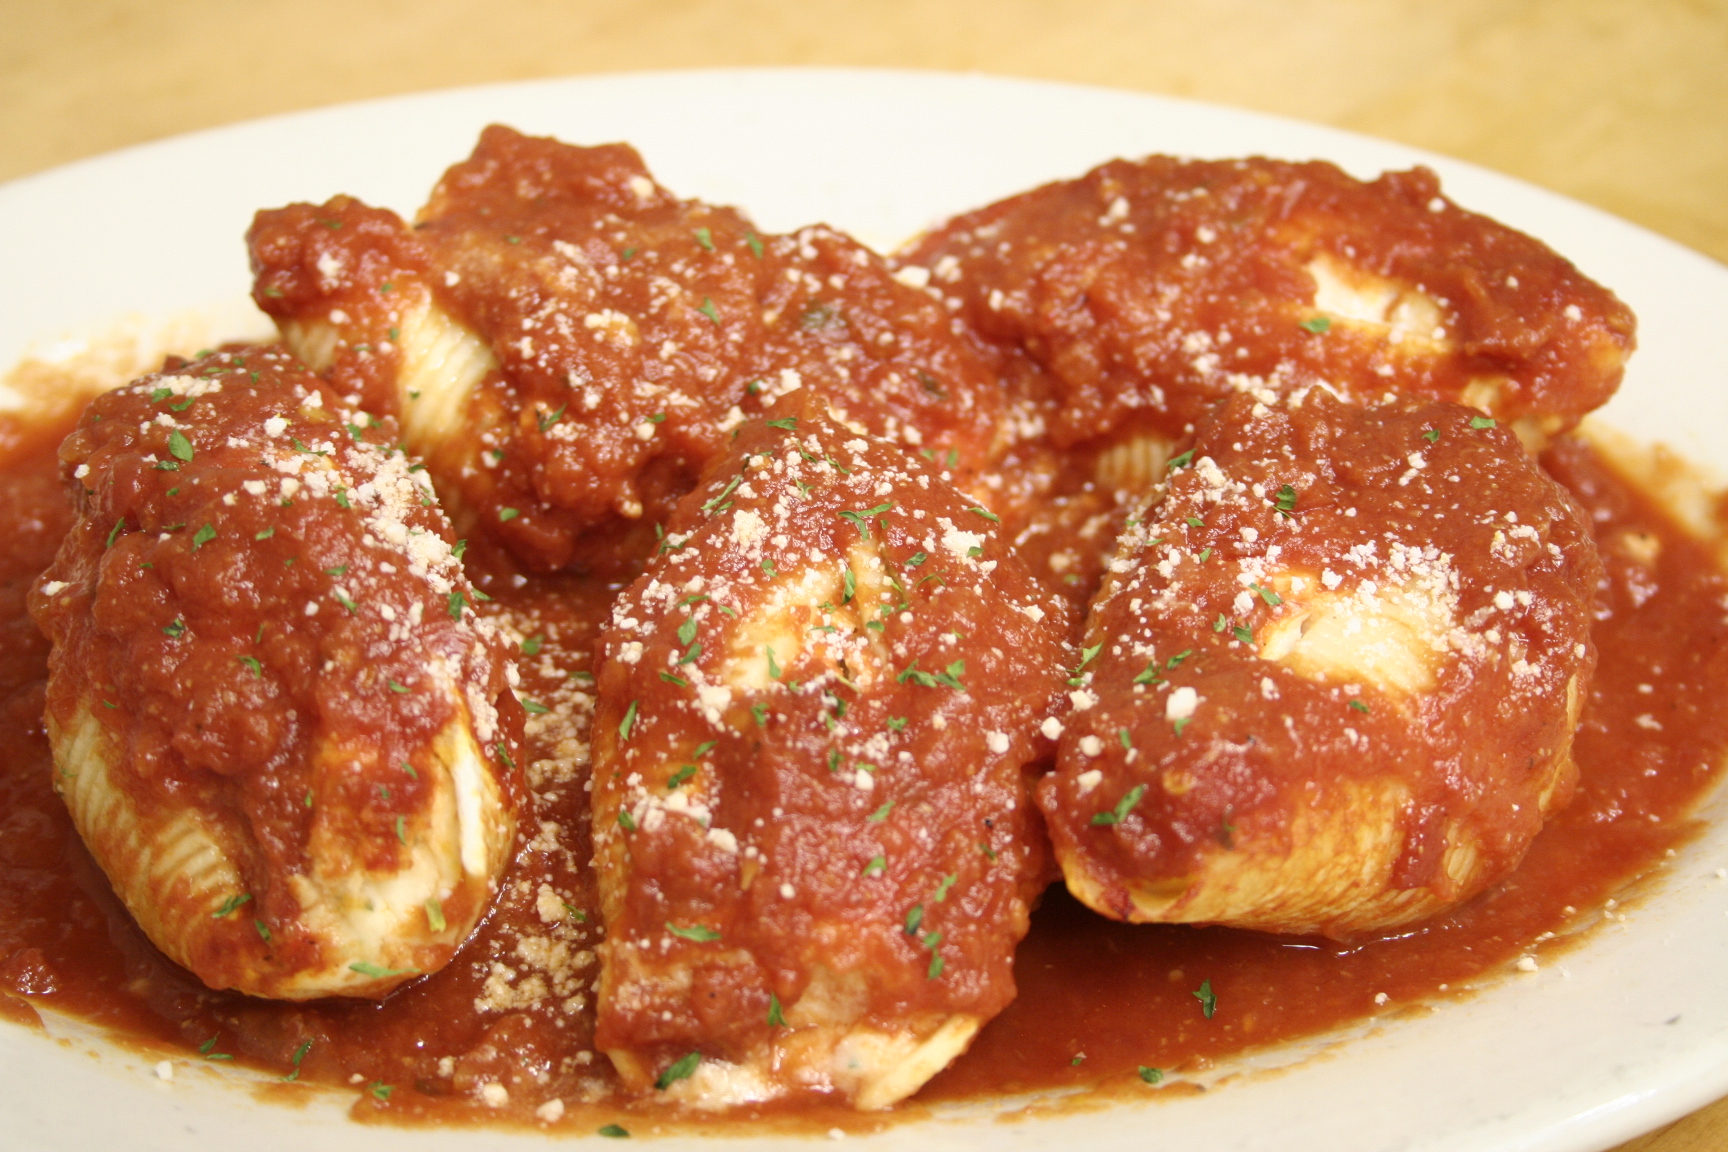 Stuffed shells topped with red sauce